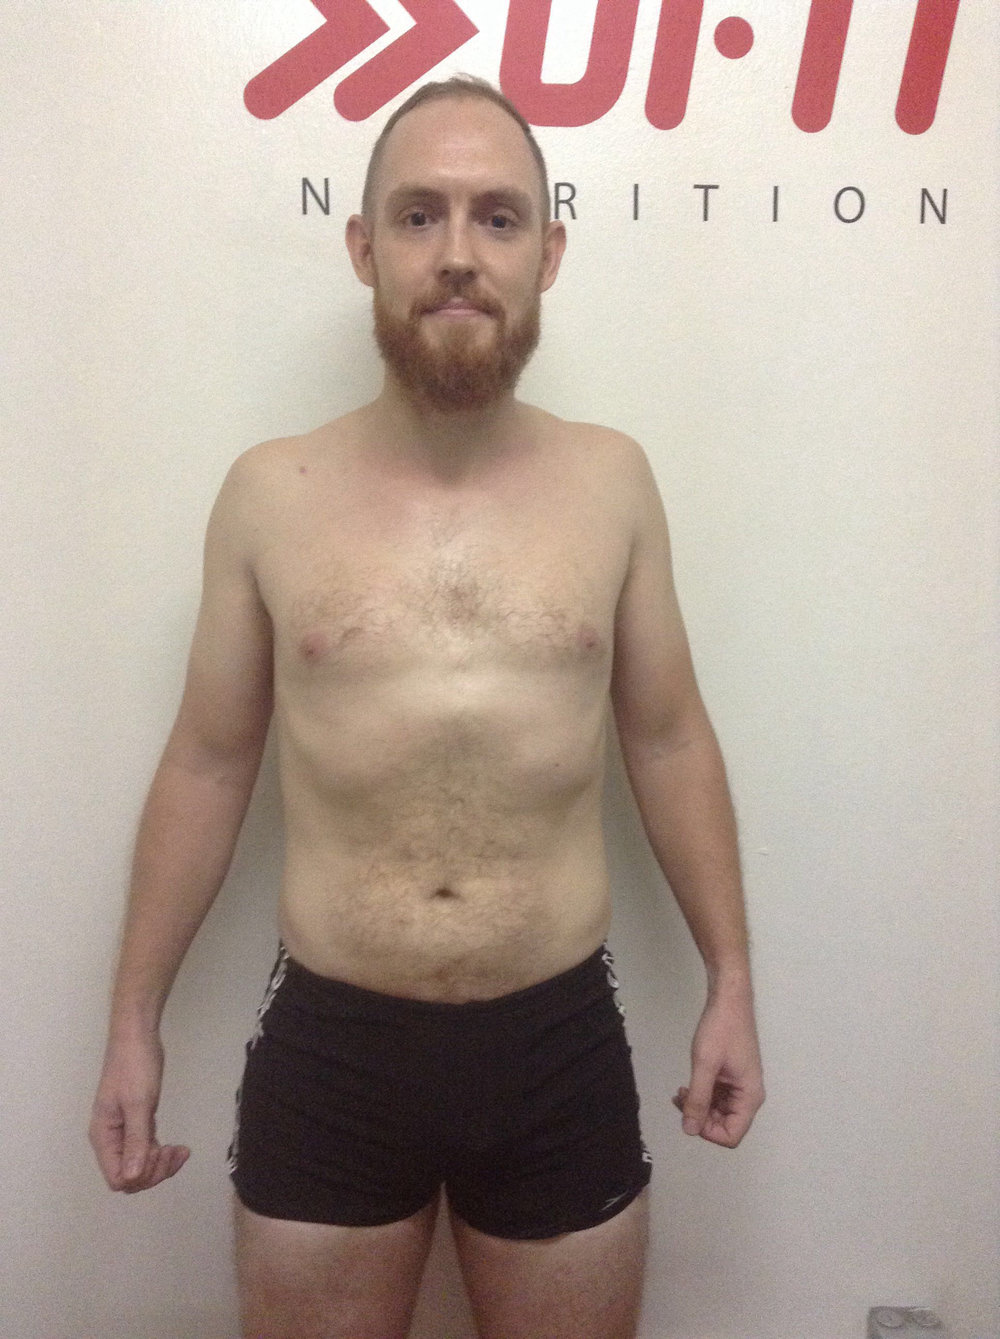 After the Challenge, 16 June 2017 - Body Fat 12.73%, 77.8kg